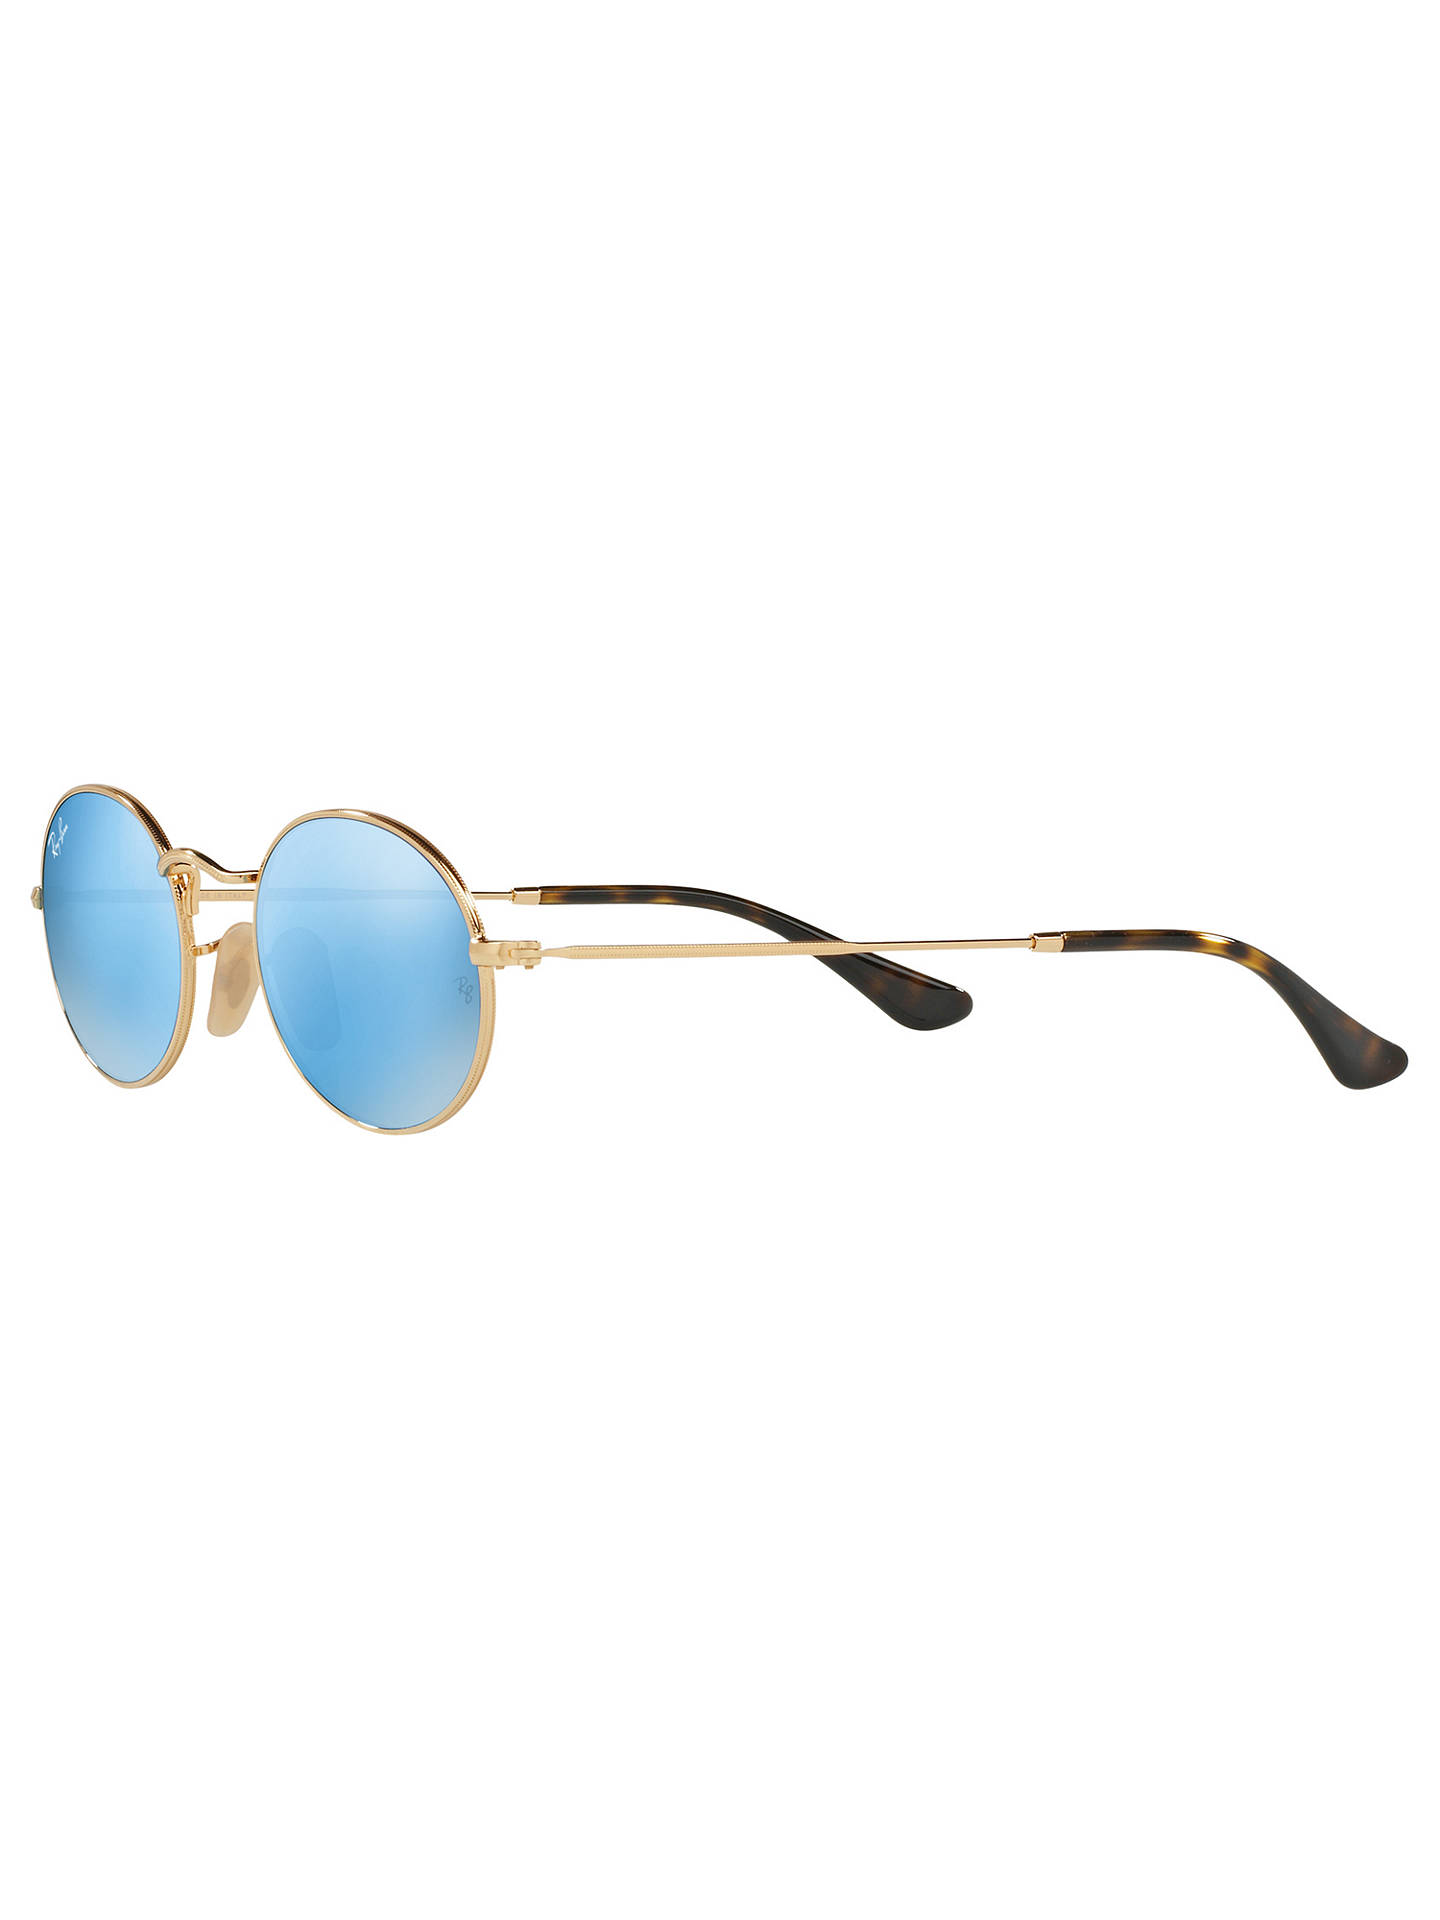 Buy Ray-Ban RB3547 Oval Flat Lens Sunglasses, Gold/Turquoise Online at johnlewis.com